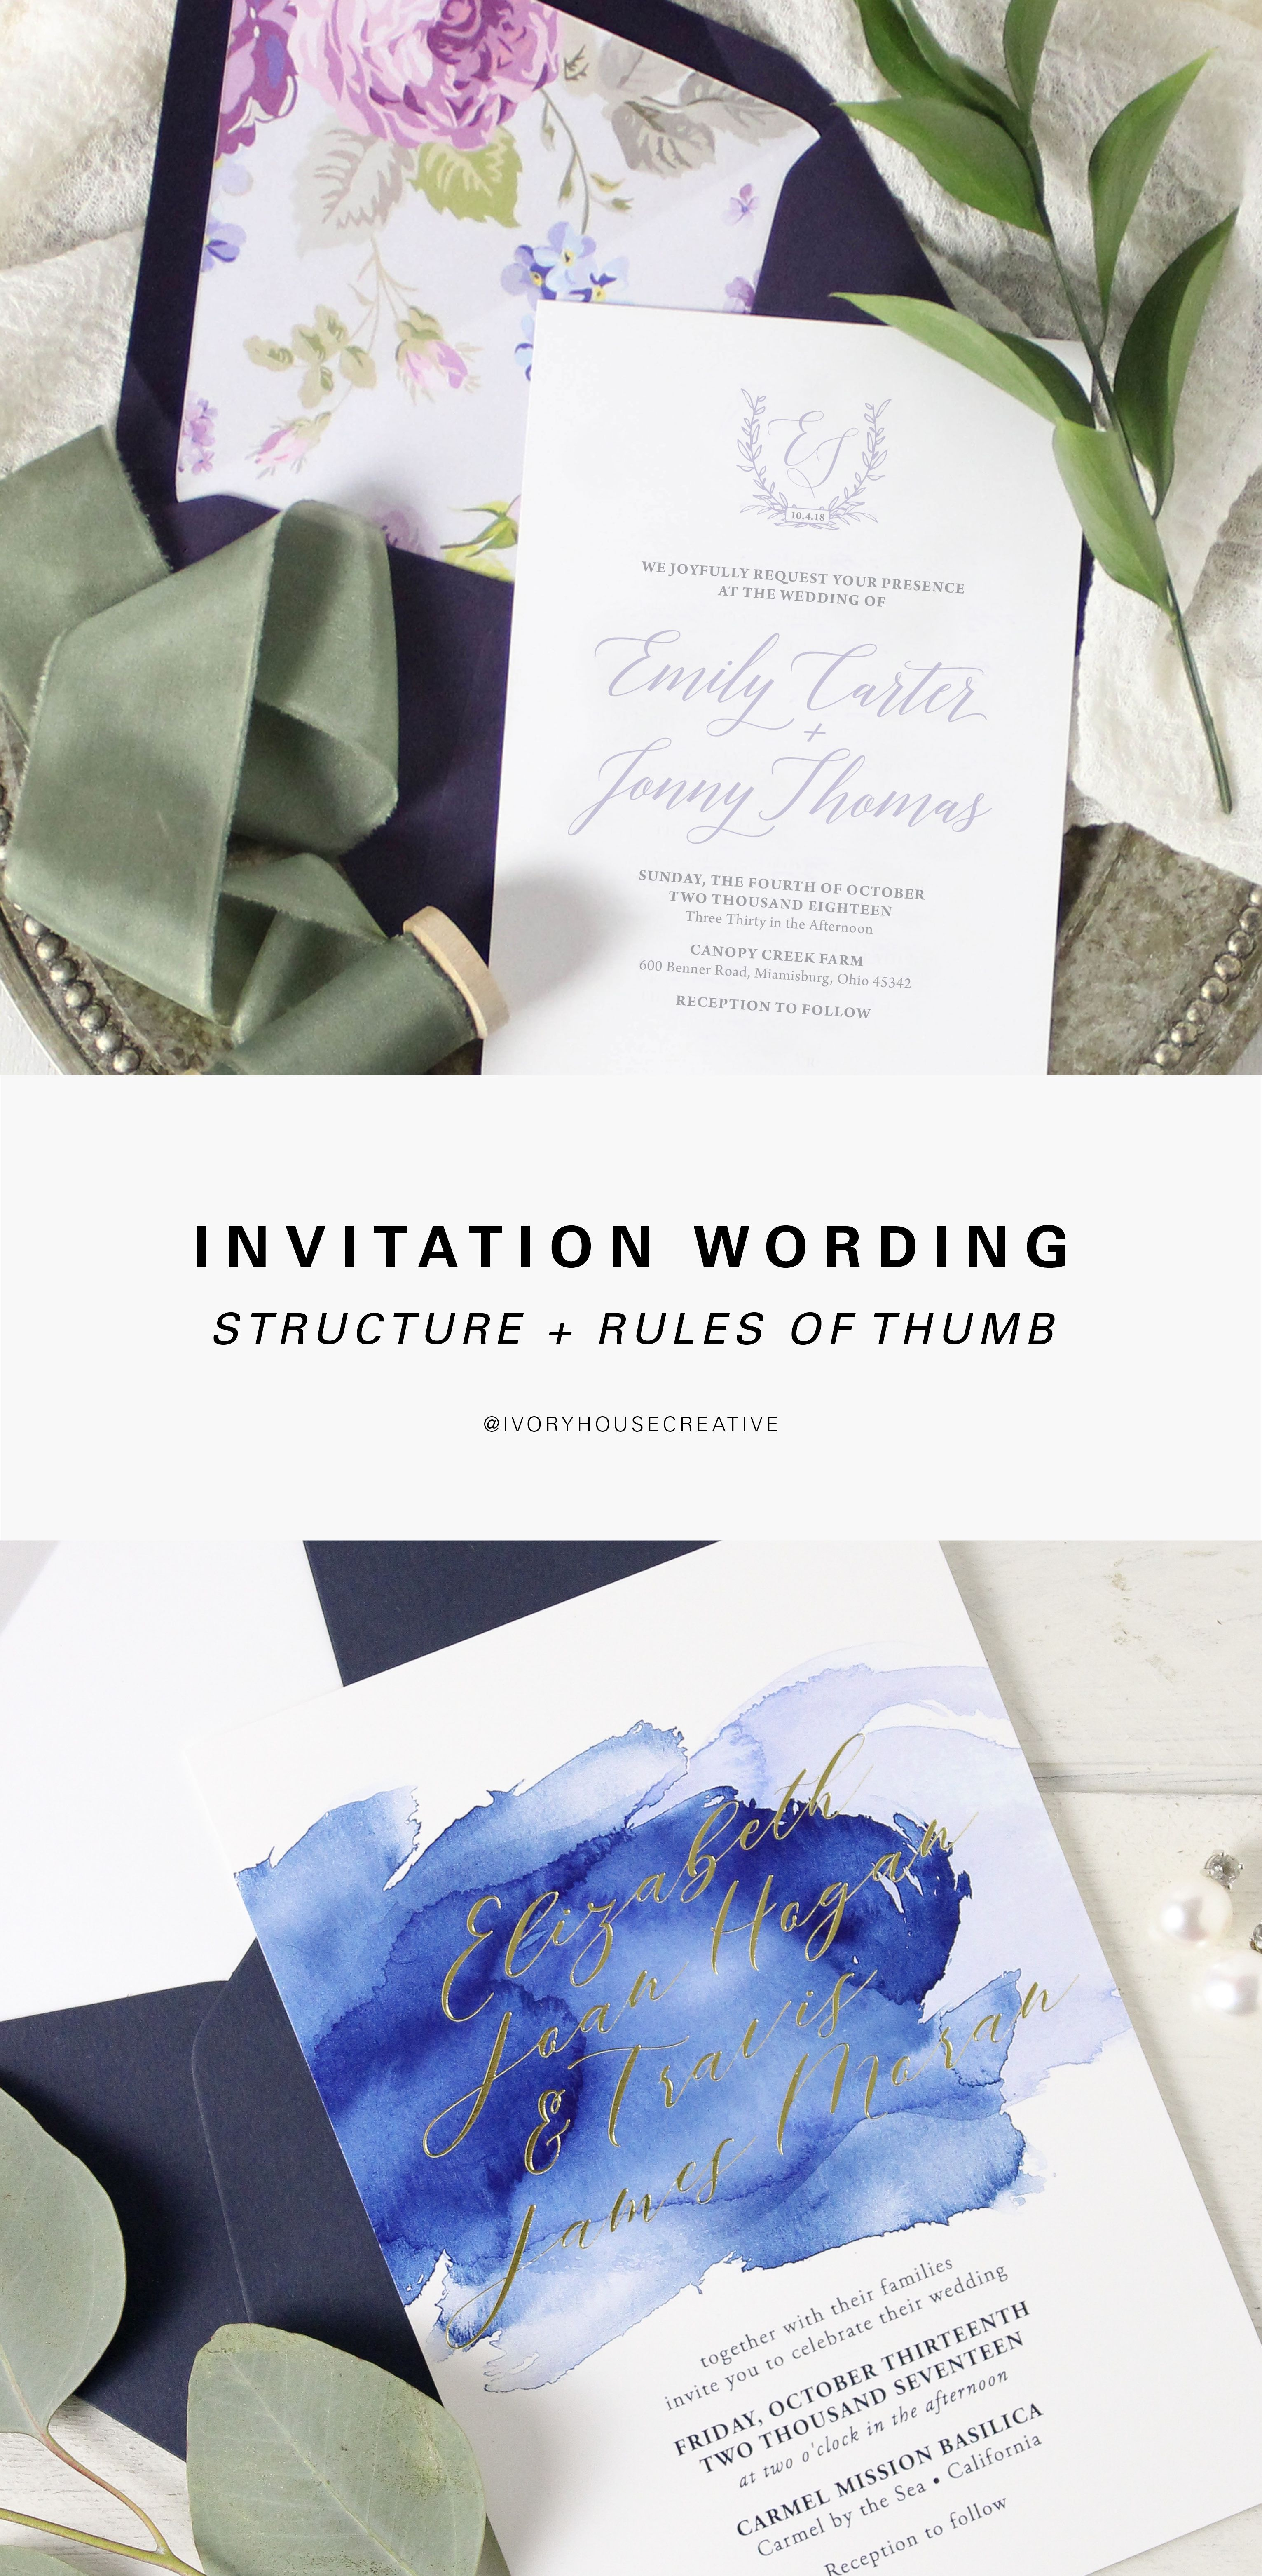 Wedding invitation wording the structure pinterest wedding invitation wording tips and rules of thumb weddinginvitations weddingstationery invitations stopboris Image collections